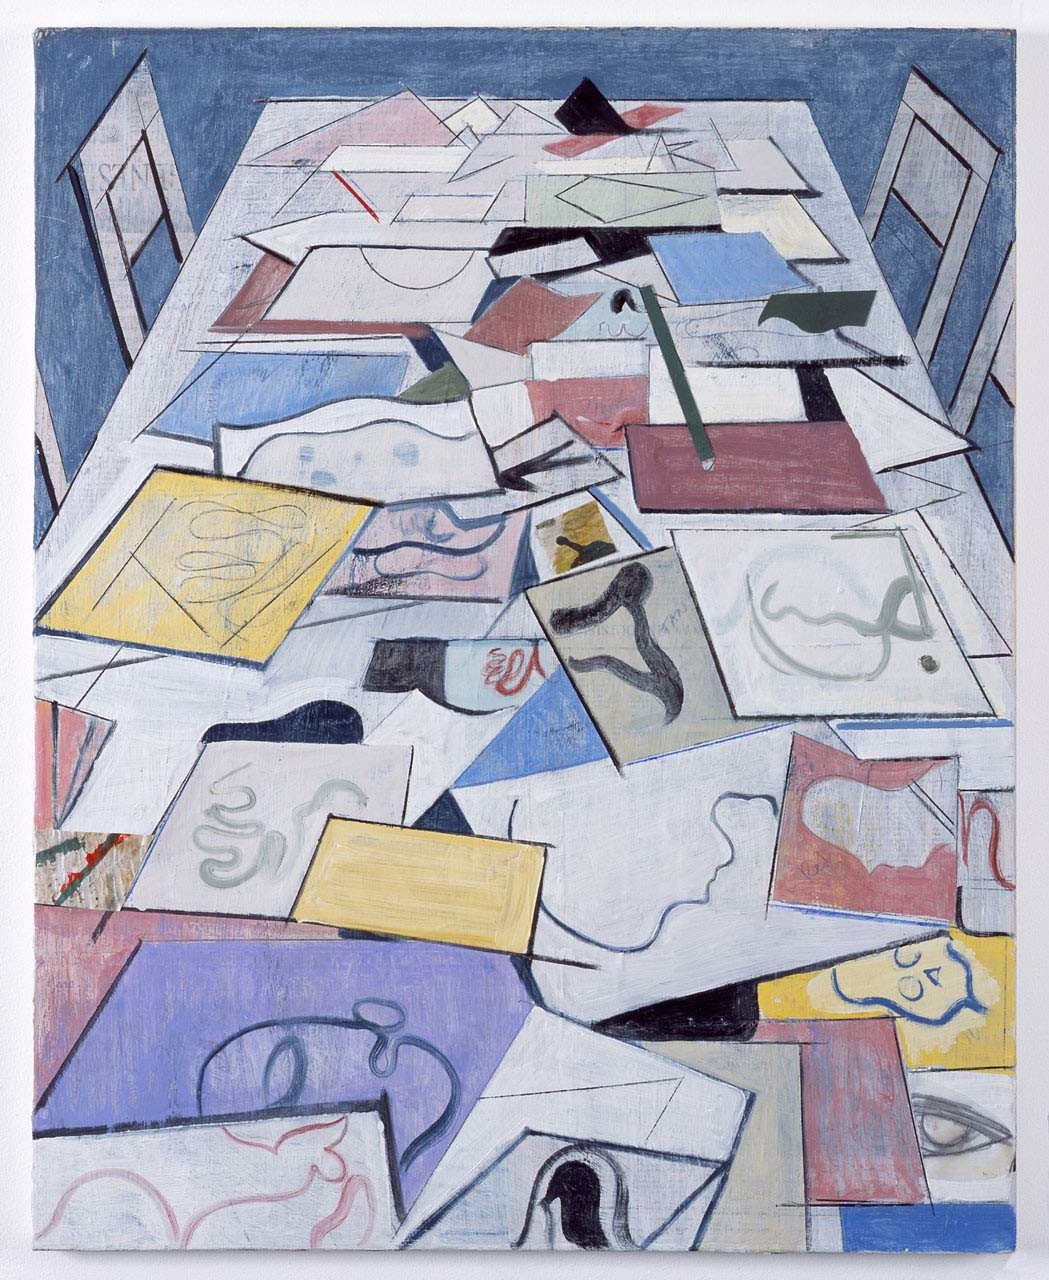 "<div class=""artwork_caption""><p>Table with Drawings, 2010</p></div>"